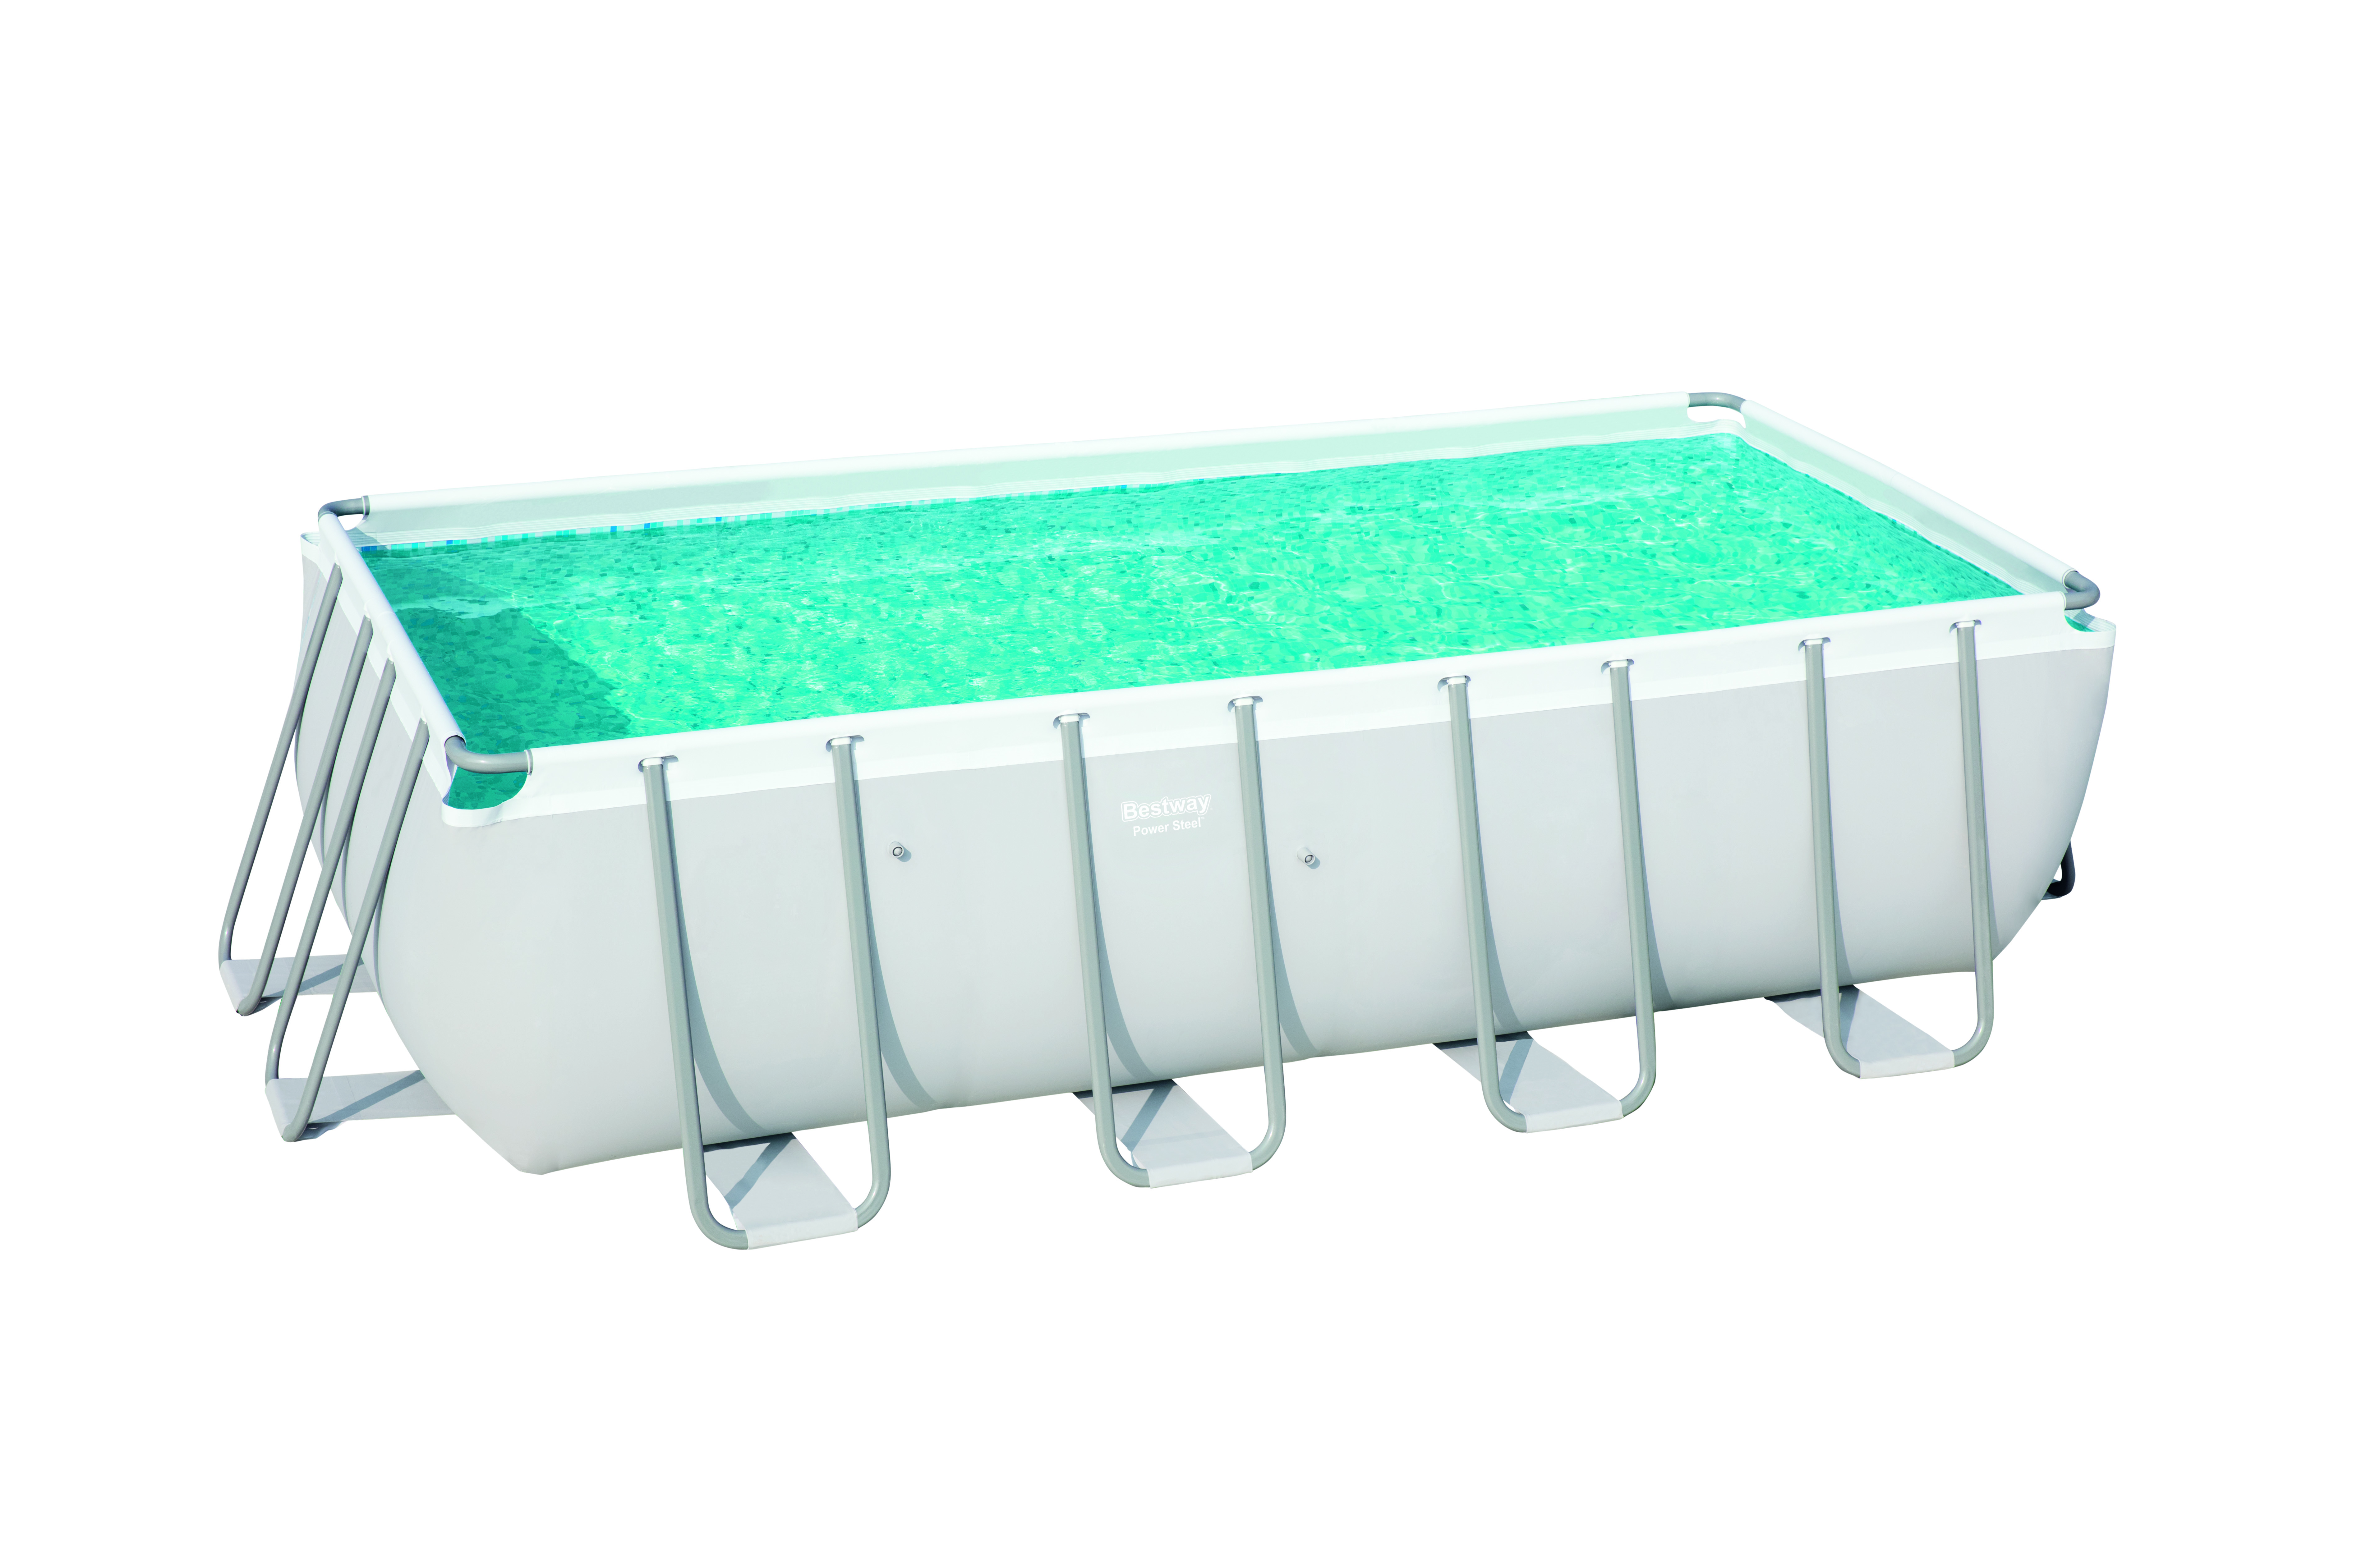 Sandfilteranlage Pool Waterman Pool Ohne Pumpe Stahlwandbecken Bestway Steel Pro Frame Pool